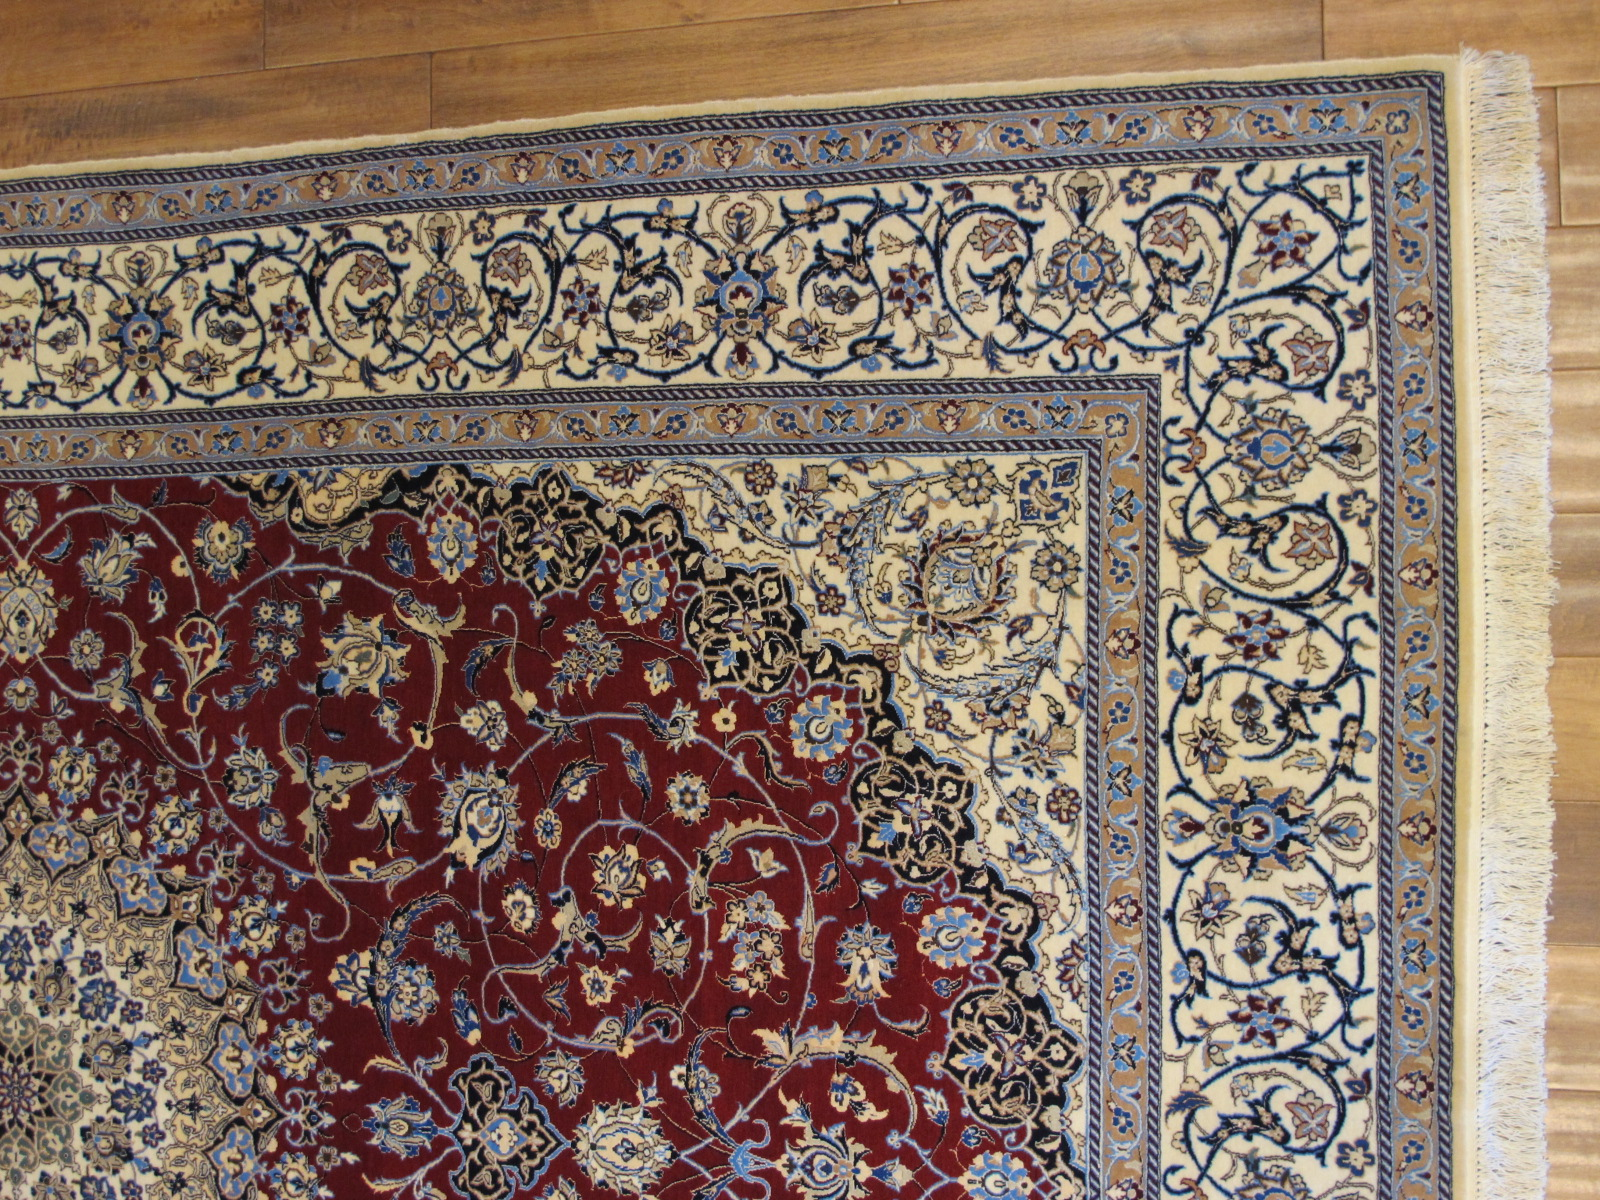 13084 Persian Nain carpet 10 x 6,9 (2)